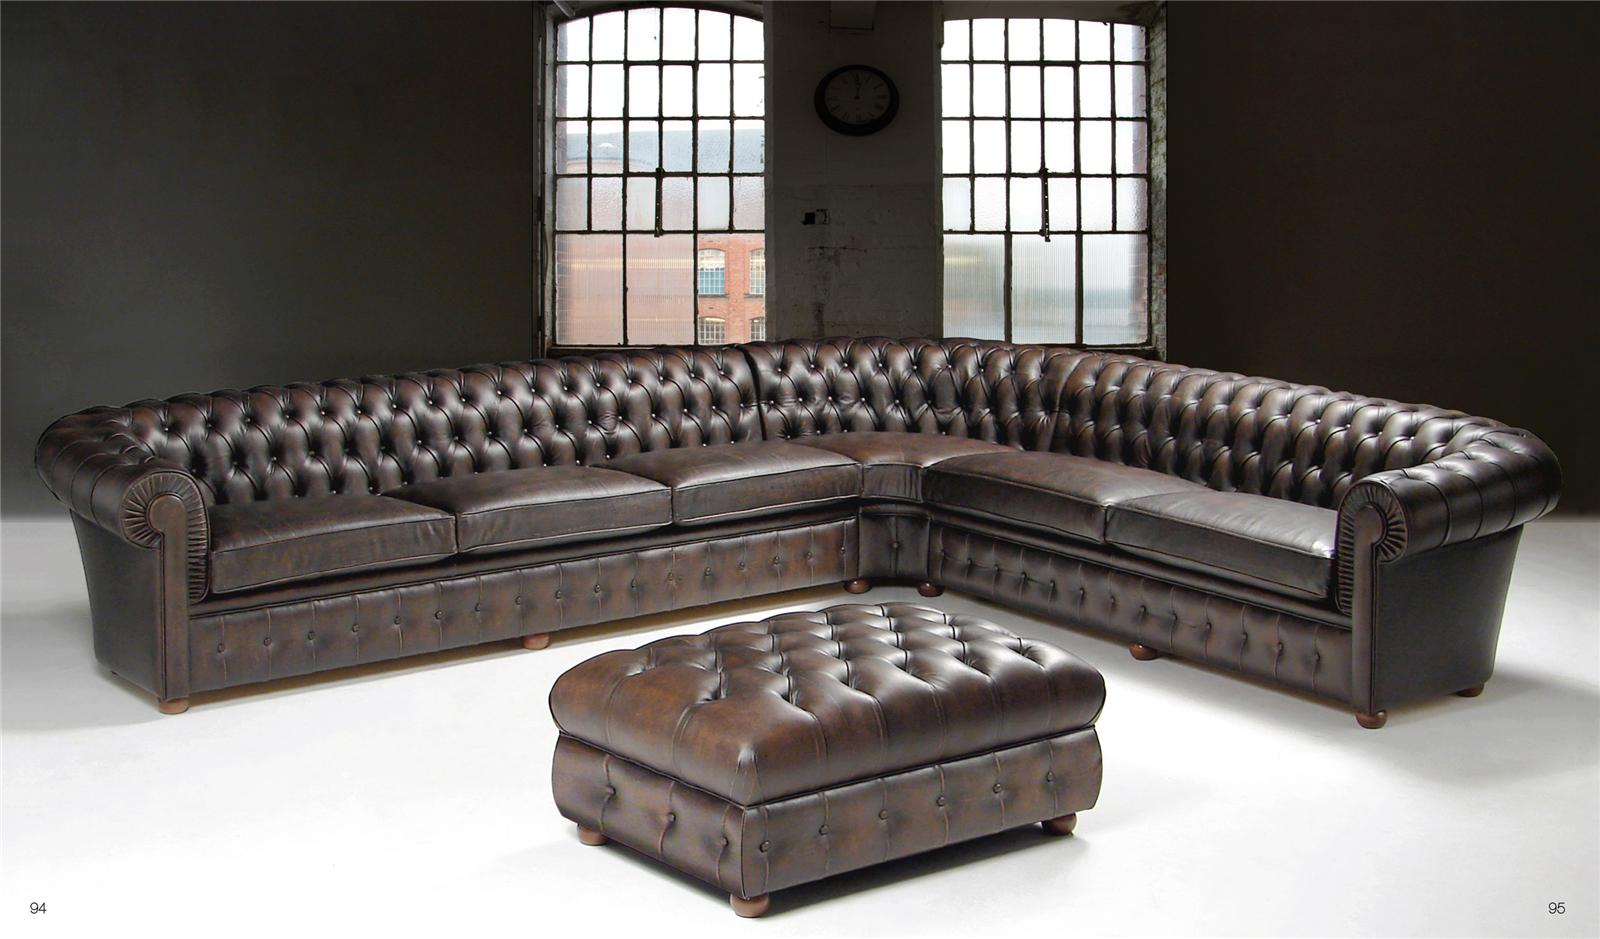 CHESTERFIELD - Sofa